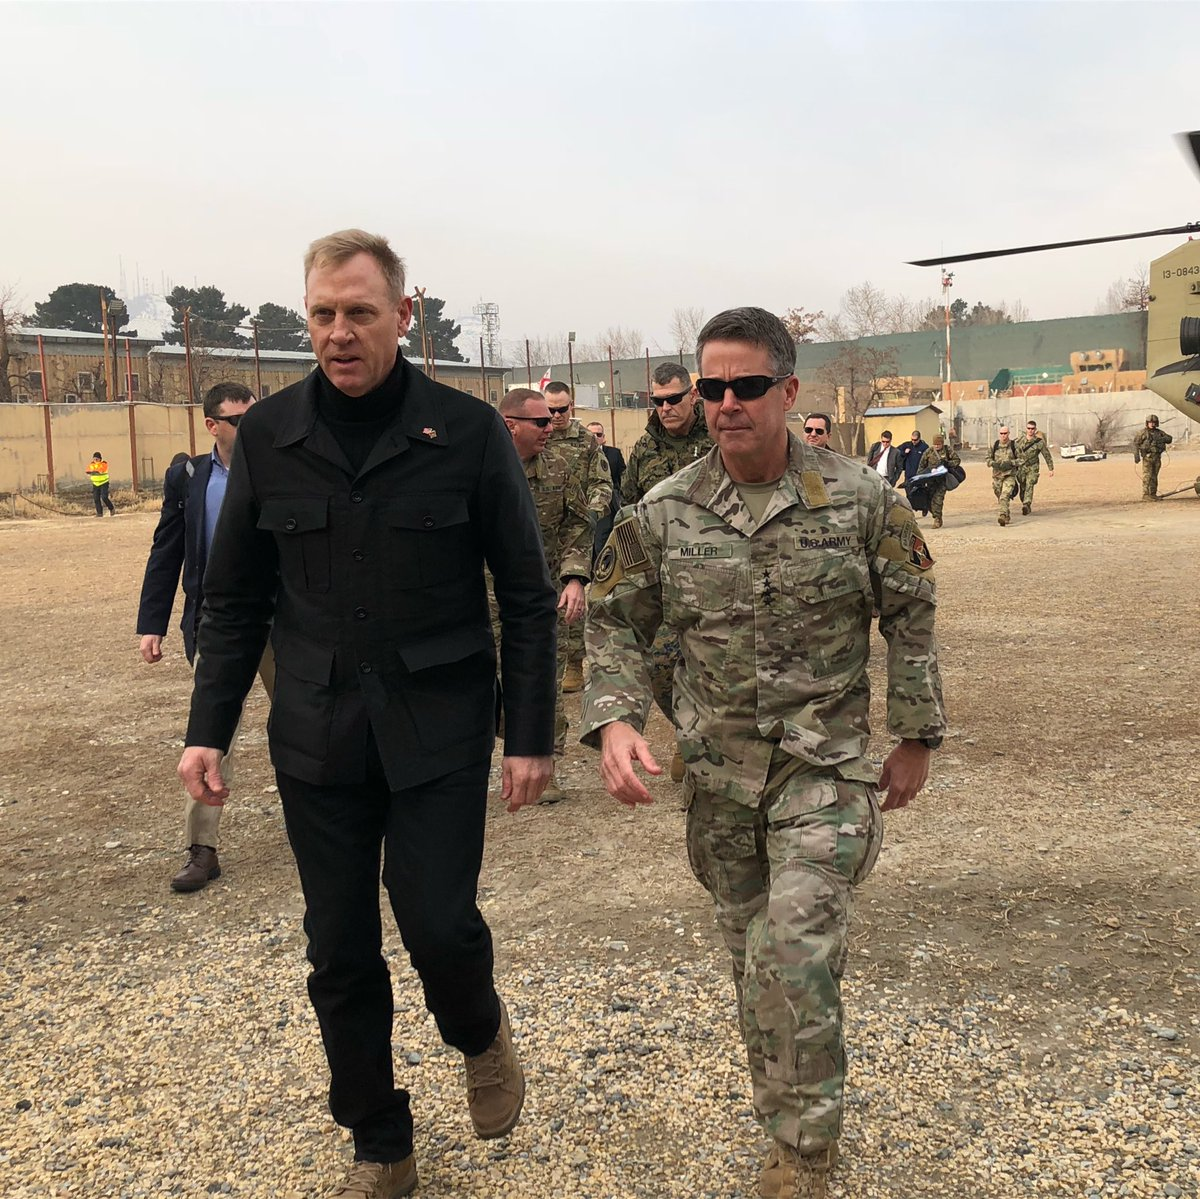 Acting US Def Sec Patrick Shanahan makes unannounced stop in Afghanistan before trip to NATO, Munich. I'm here on behalf of 5 net TV pool